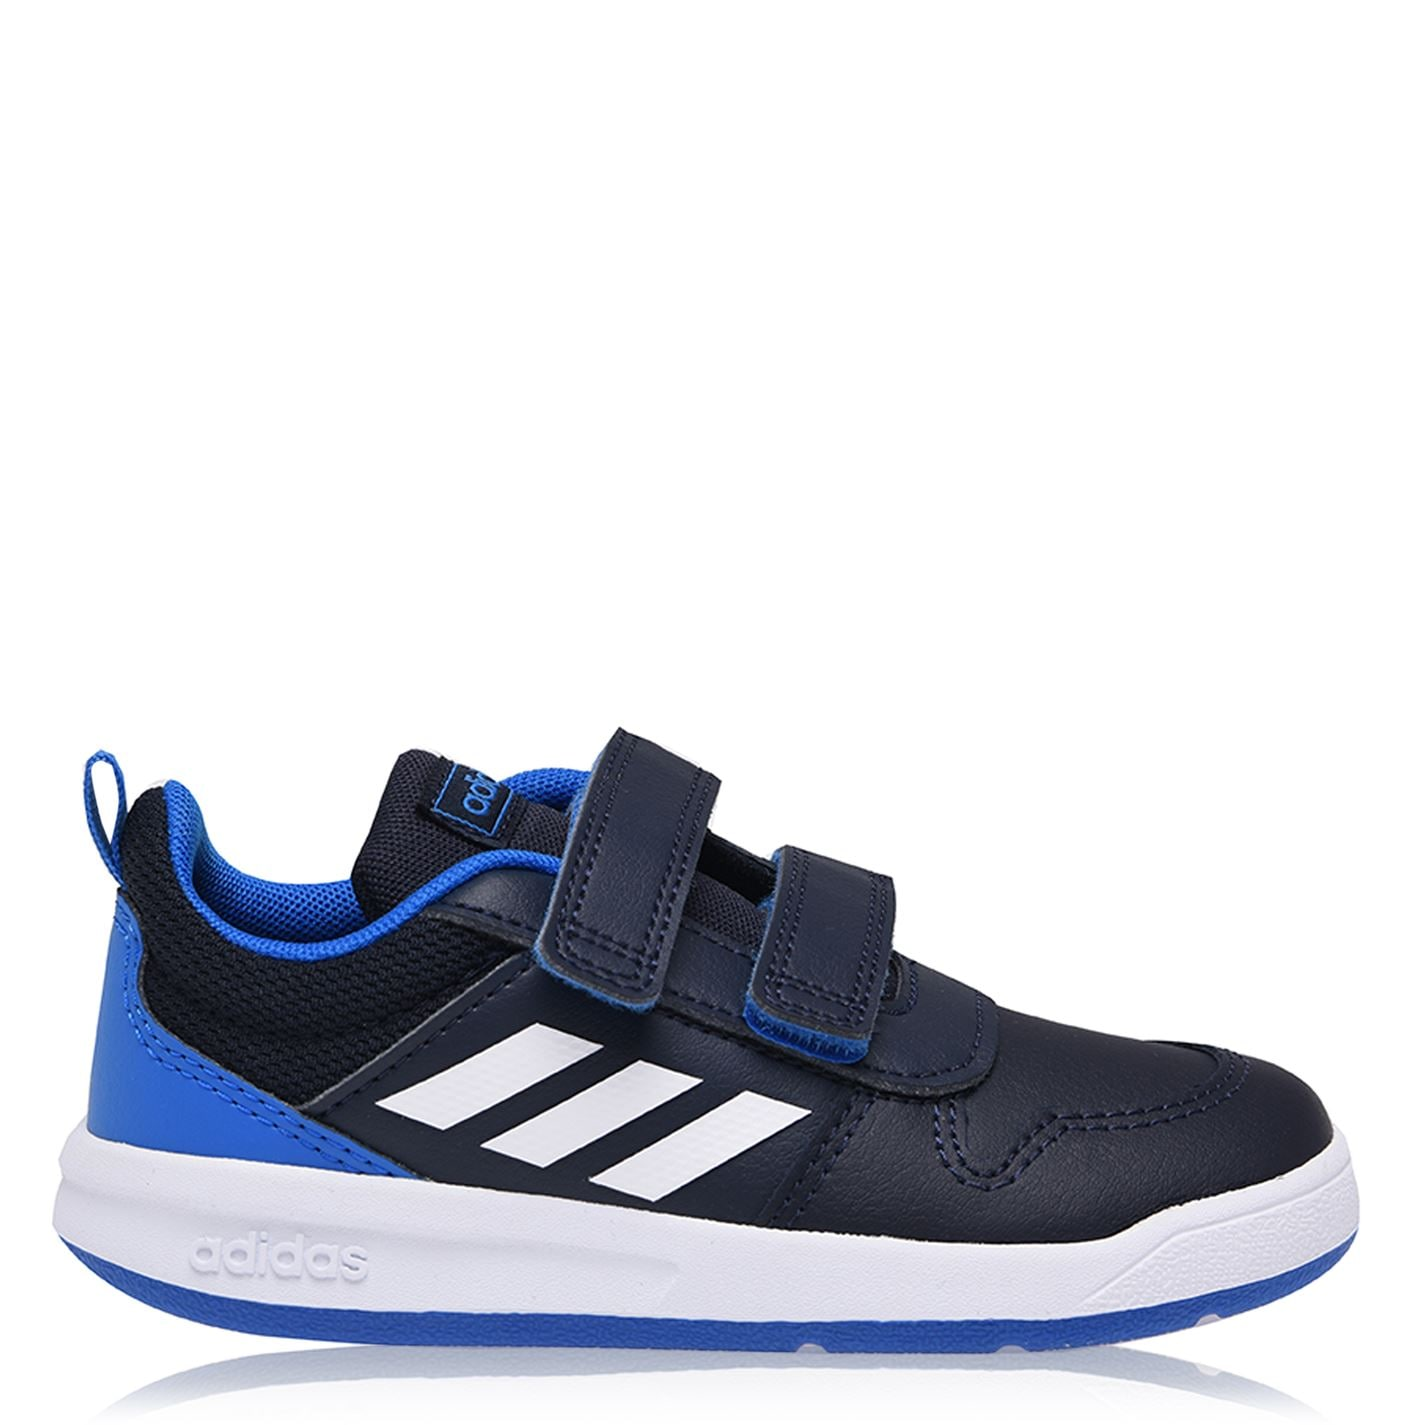 adidas Tensuar Trainers Infant Boys Navy/Blue/Wht